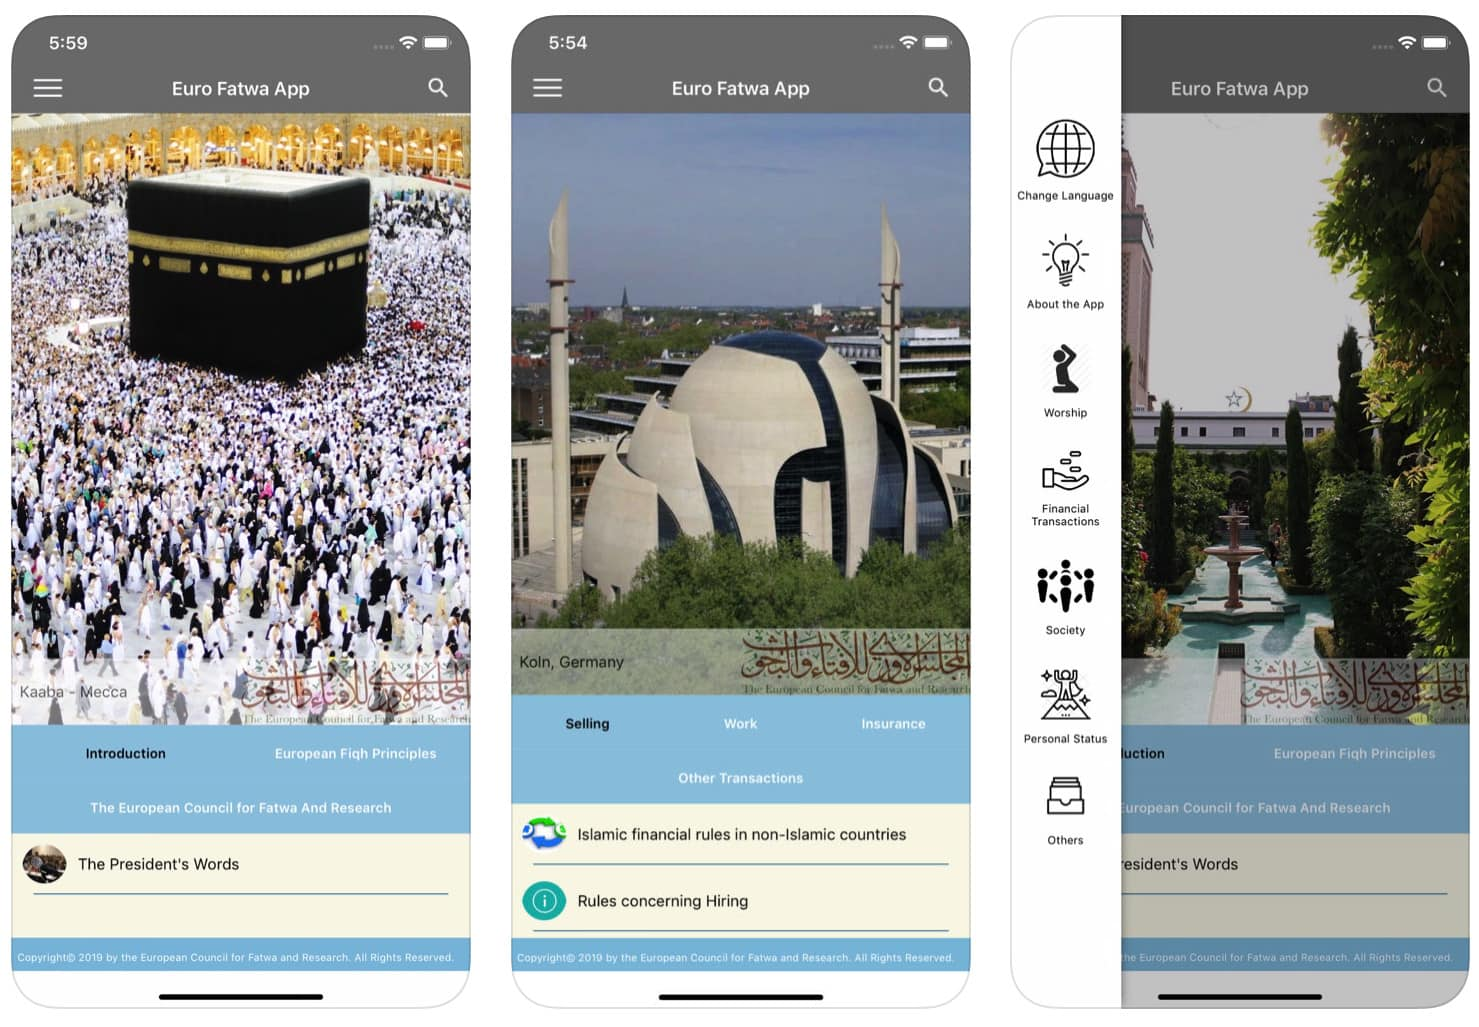 Critics call the Euro Fatwa app a tool for Islamic radicalization.